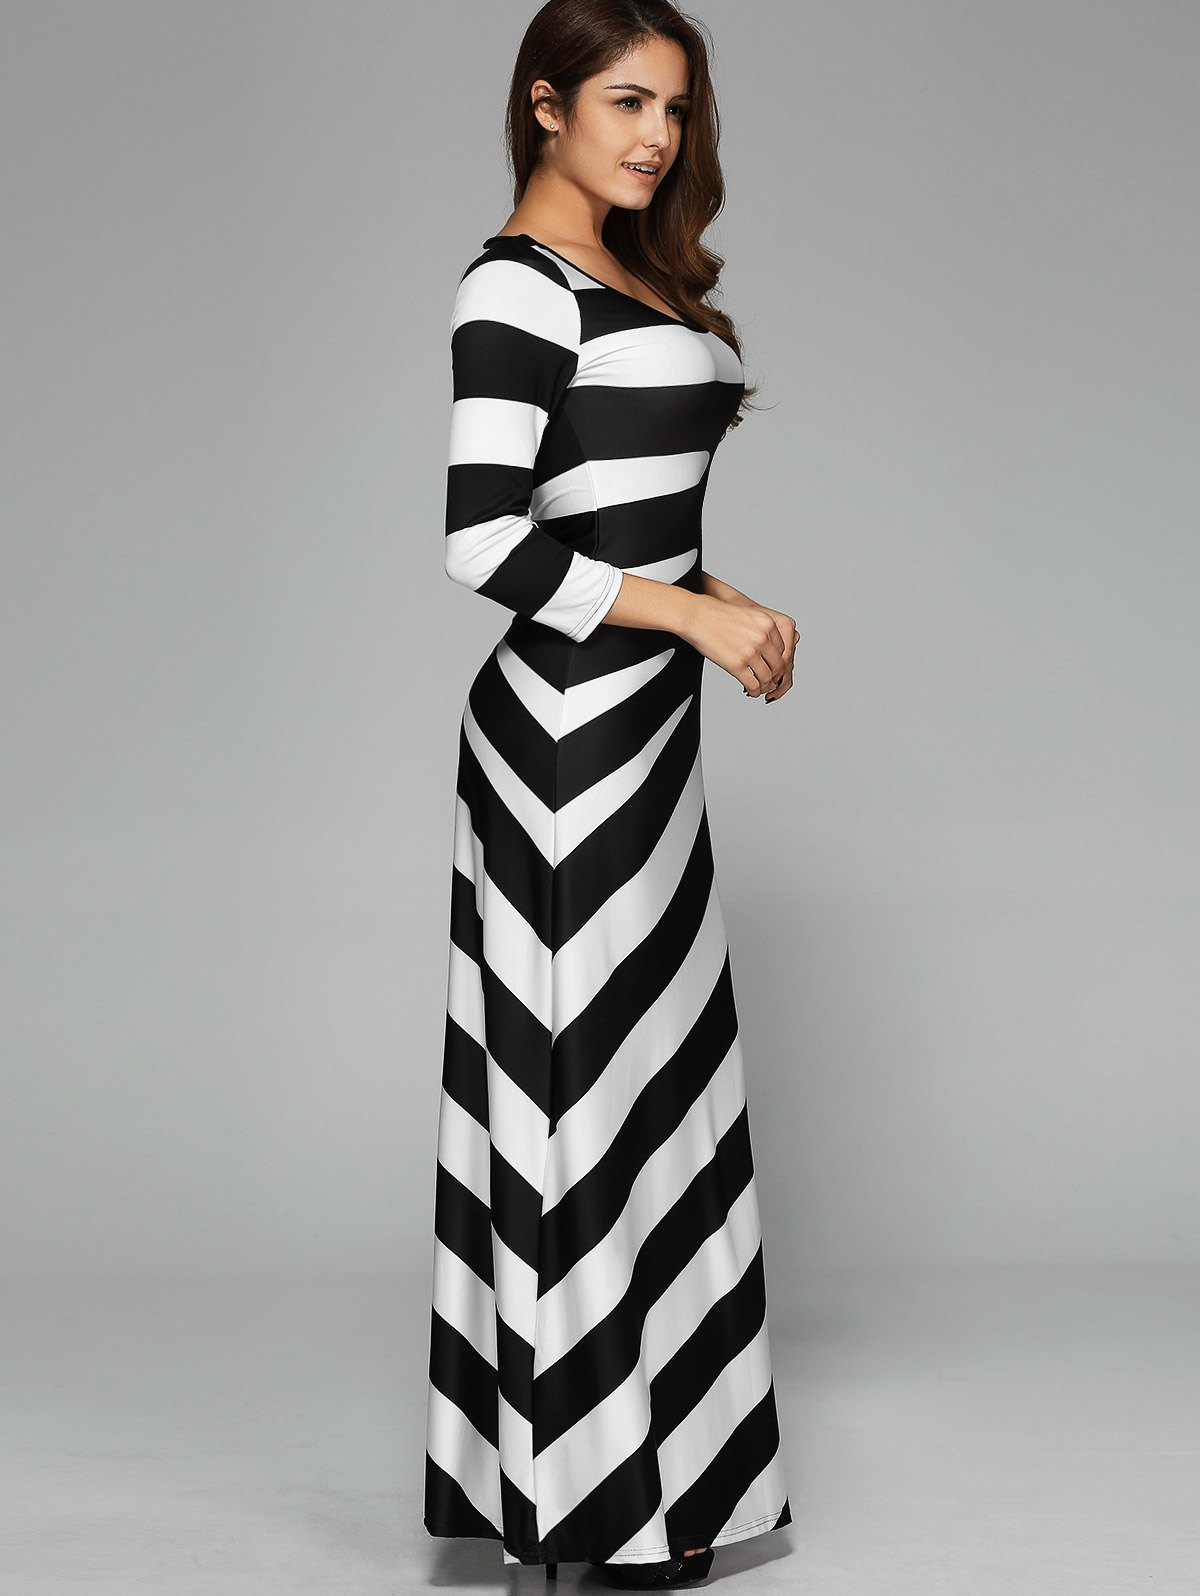 Party Dresses. Formal Dresses. Bridesmaid Dresses. Sale. All Sale. Current Promotions. Shop By Discount 20% Off 40% Off 50% Off 70%+ Off. Lulus Graciella White Lace Maxi Dress $84 Lulus Taia Black and White Grid Print Tie-Front Long Sleeve Midi Dress $54 Select a Page 1. of NEXT.